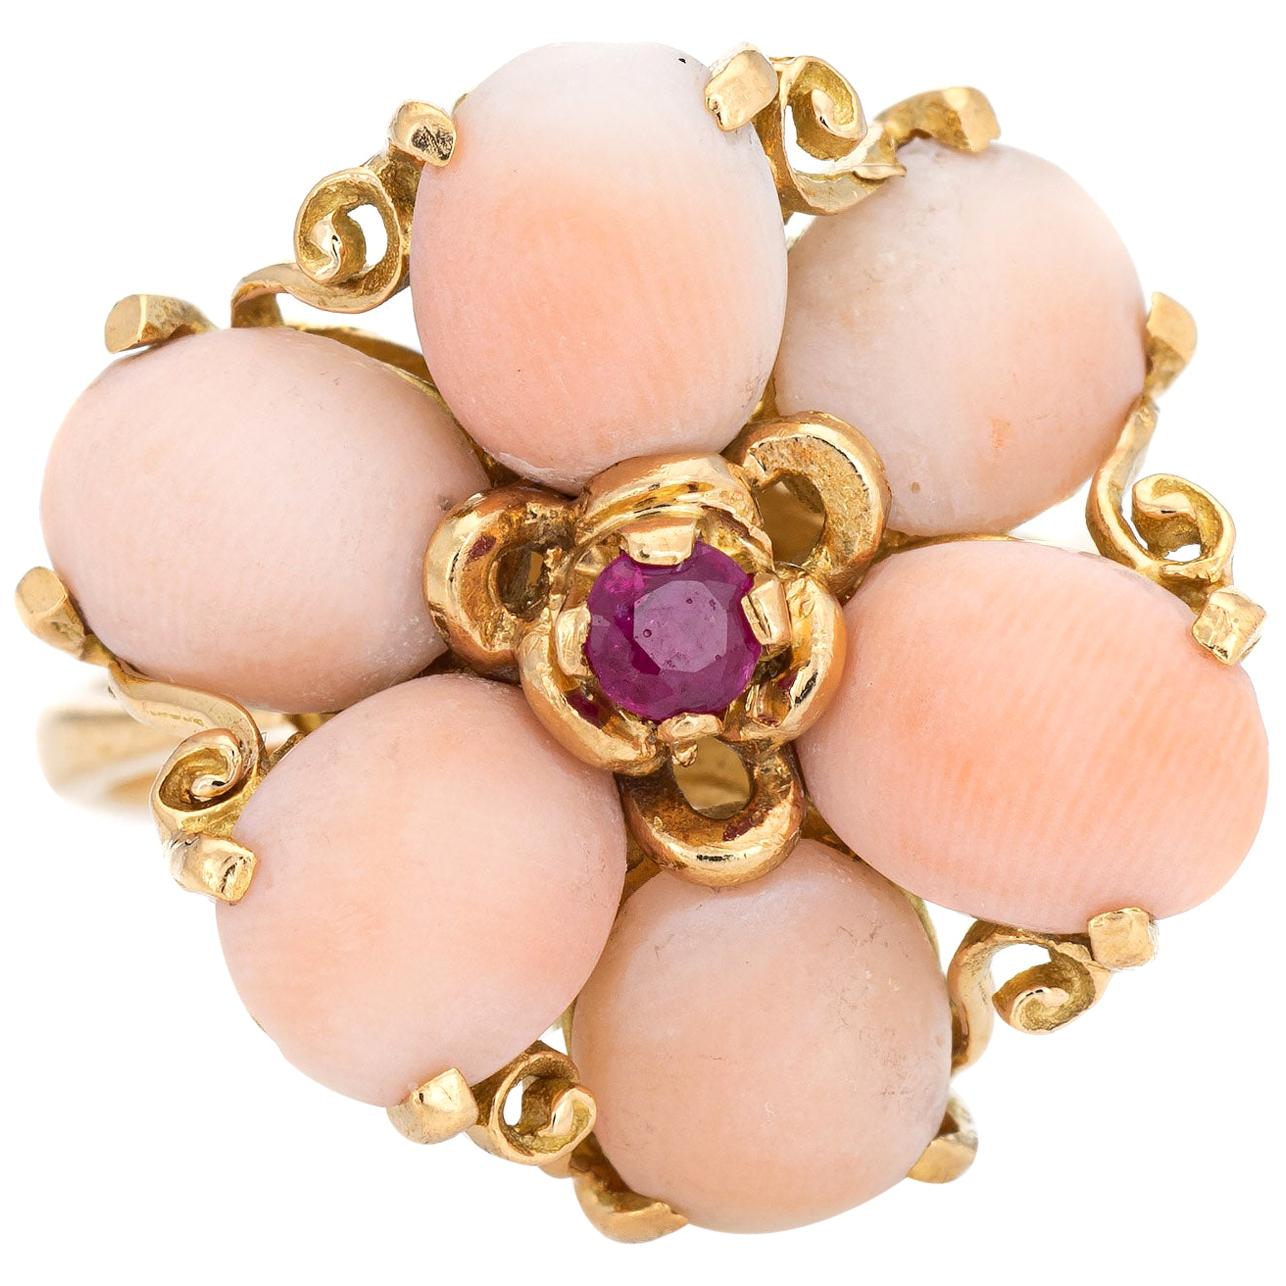 Angel Skin Coral Ruby Ring 1970s Vintage 18 Karat Yellow Gold Flower Jewelry